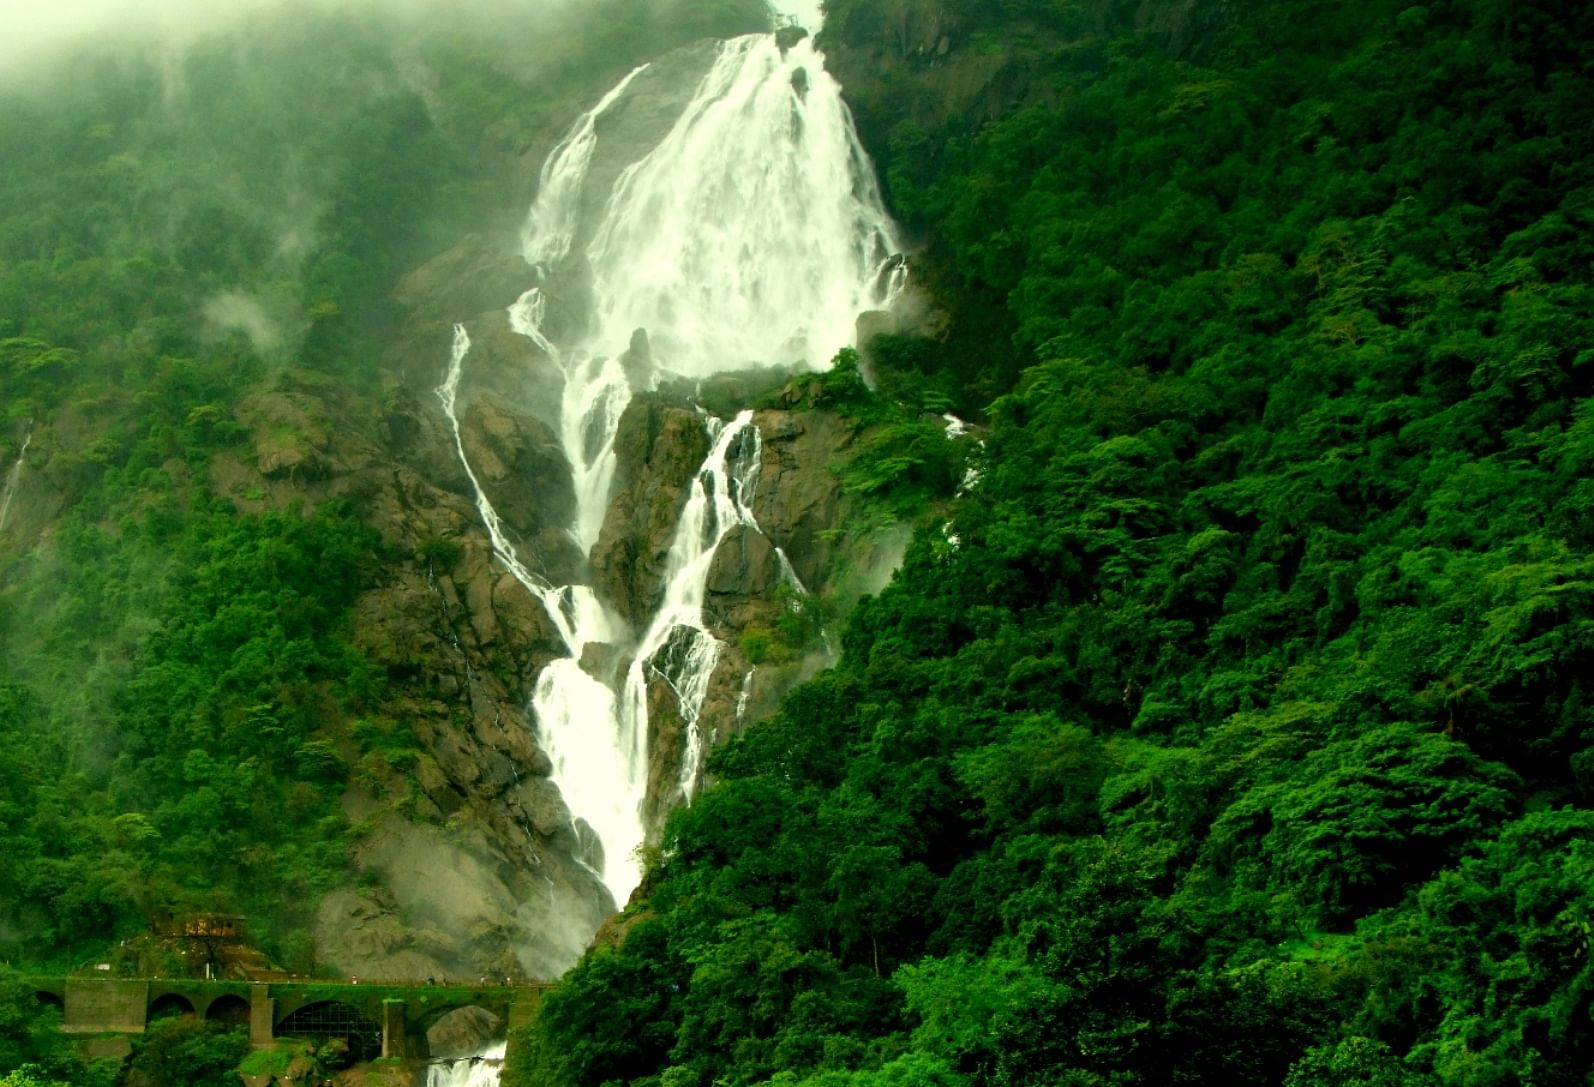 The Dudhsagar Falls